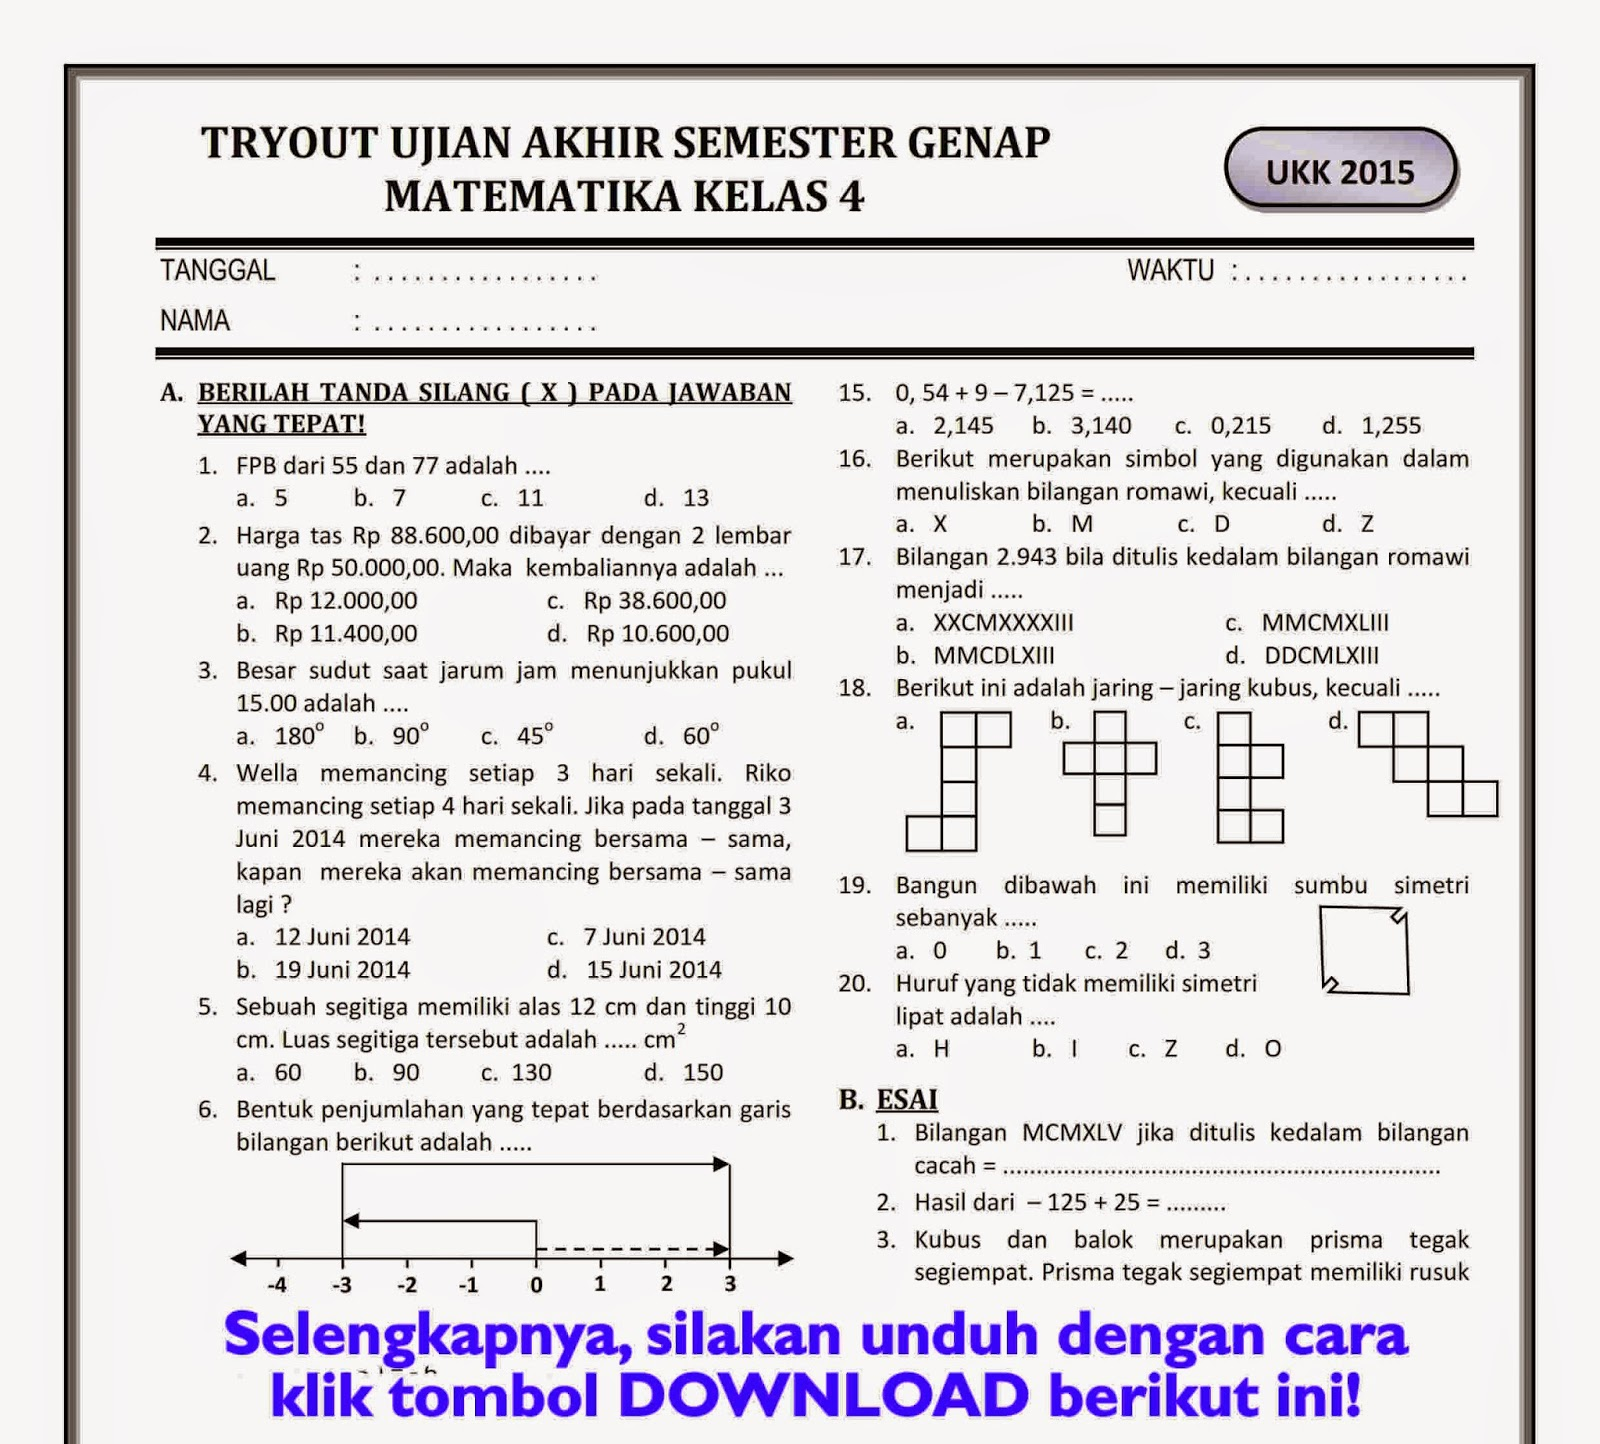 Download Soal Ukk Kelas 4 Sd Semester Genap Part 2 Work Rief Awa Blog Download